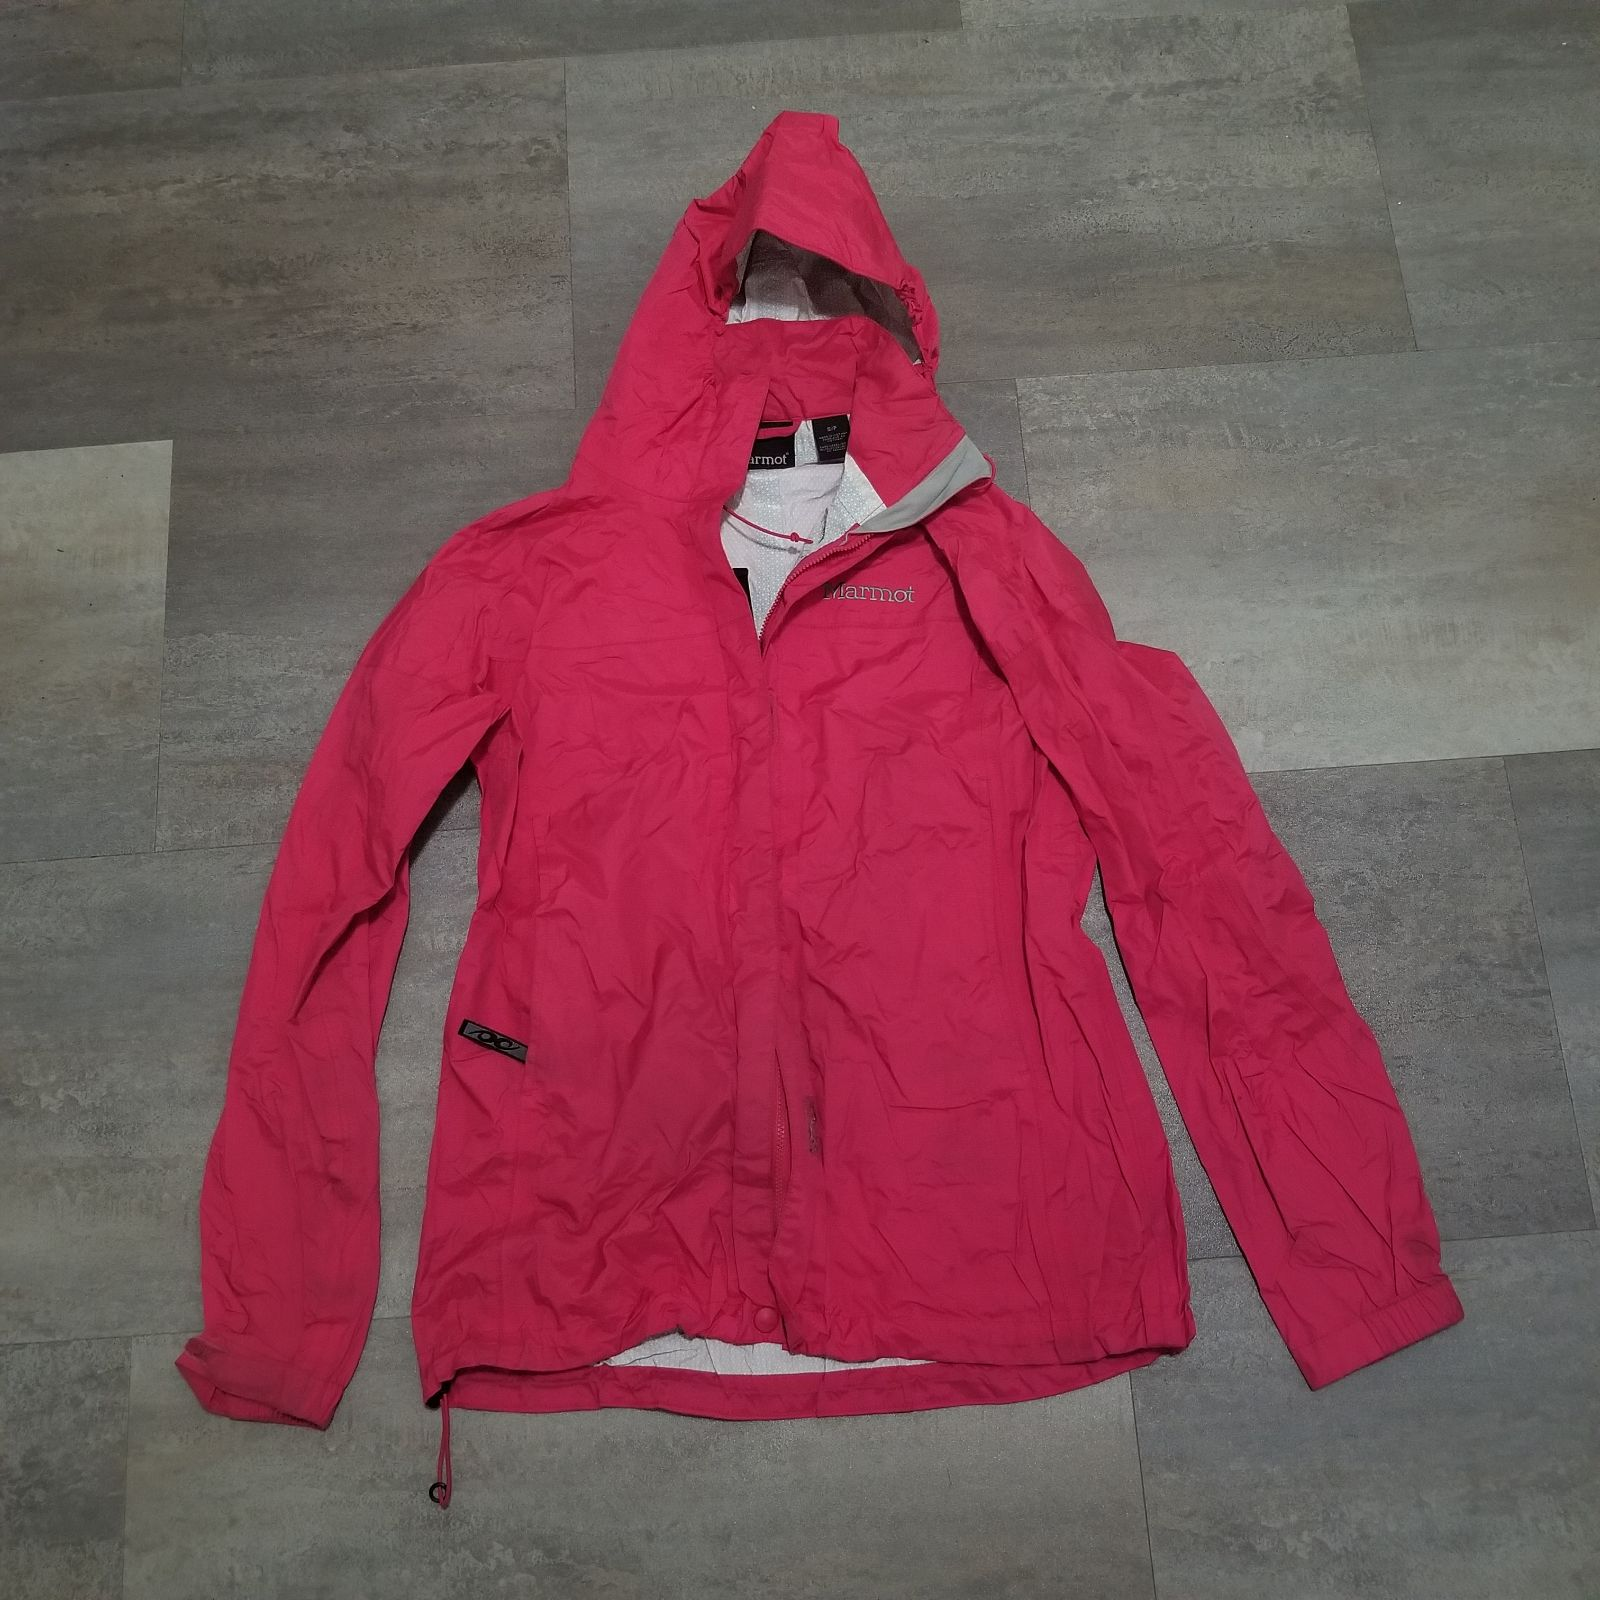 Marmot Womens Rain Jacket Size Small